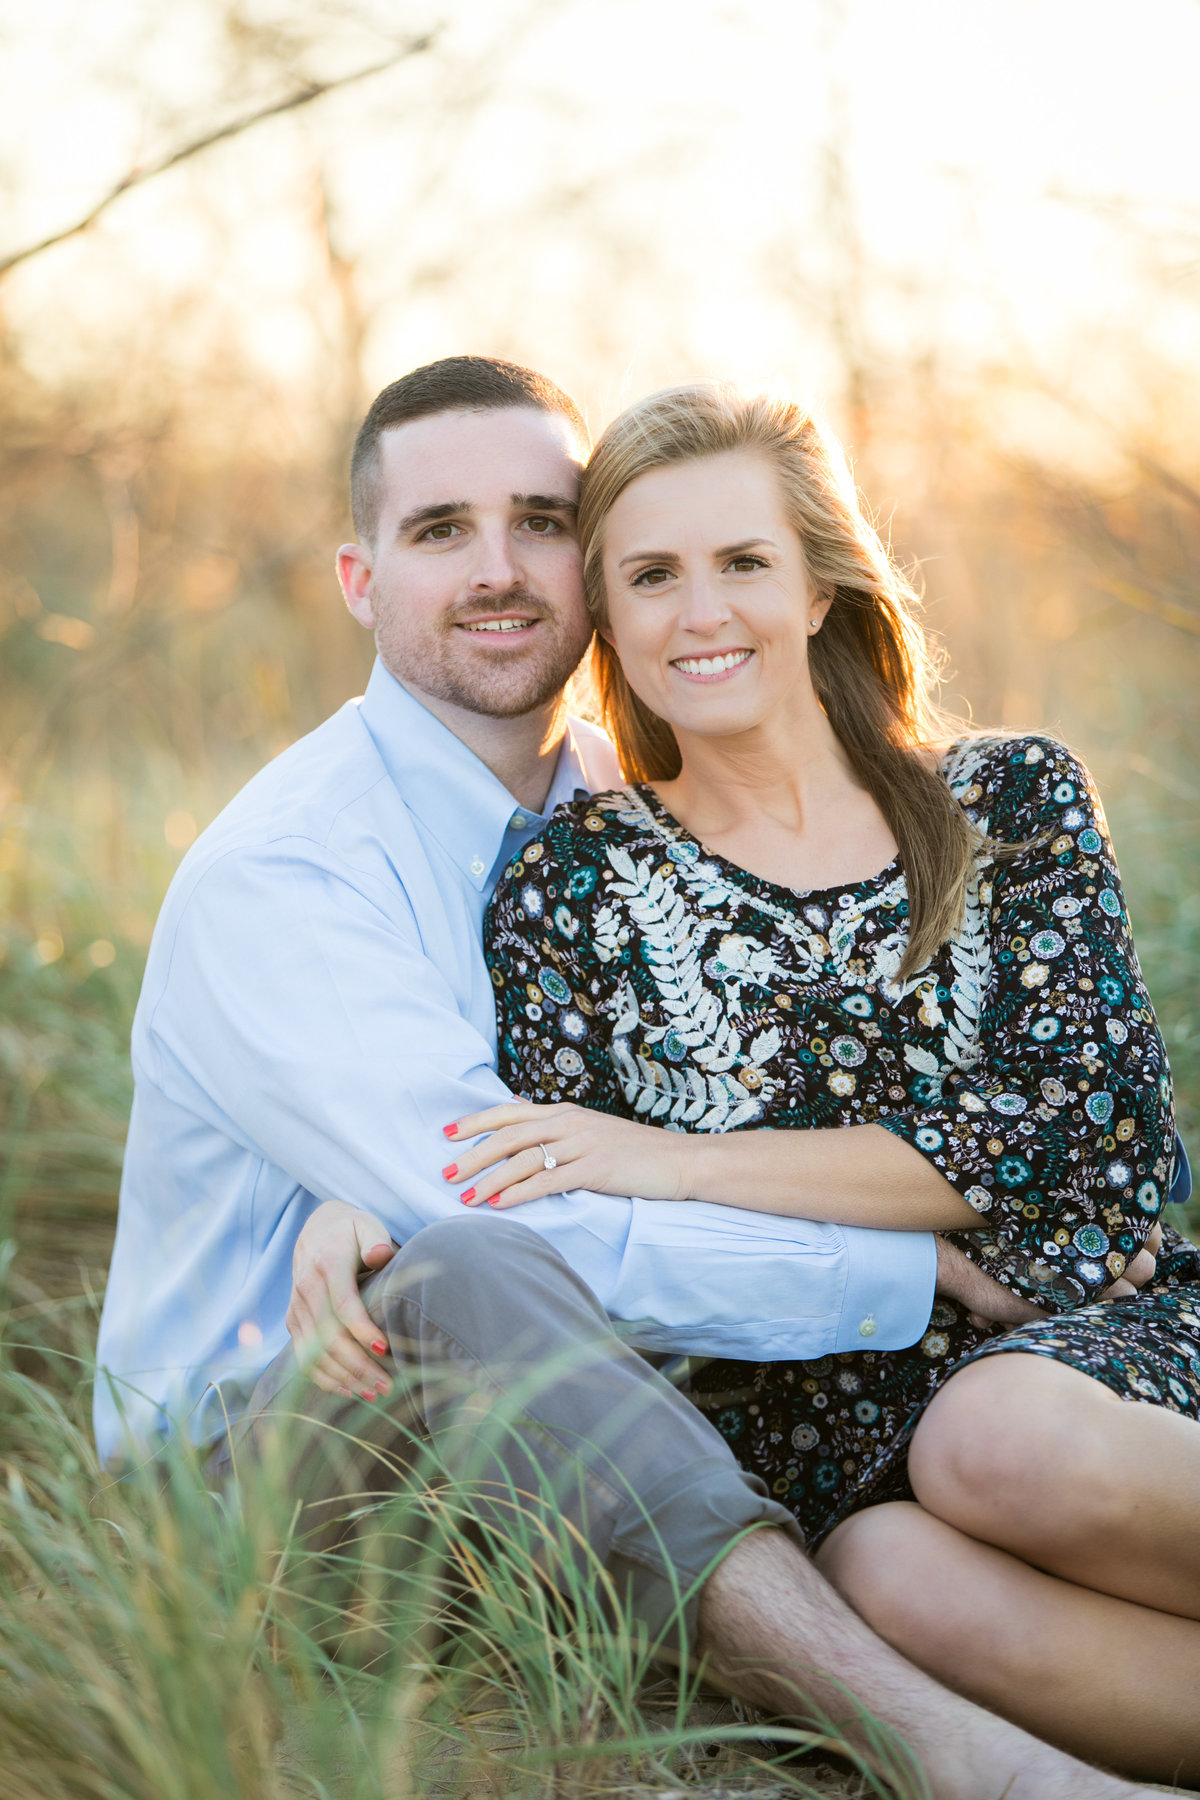 Terrapin-Park-Beach-Engagement-Photos